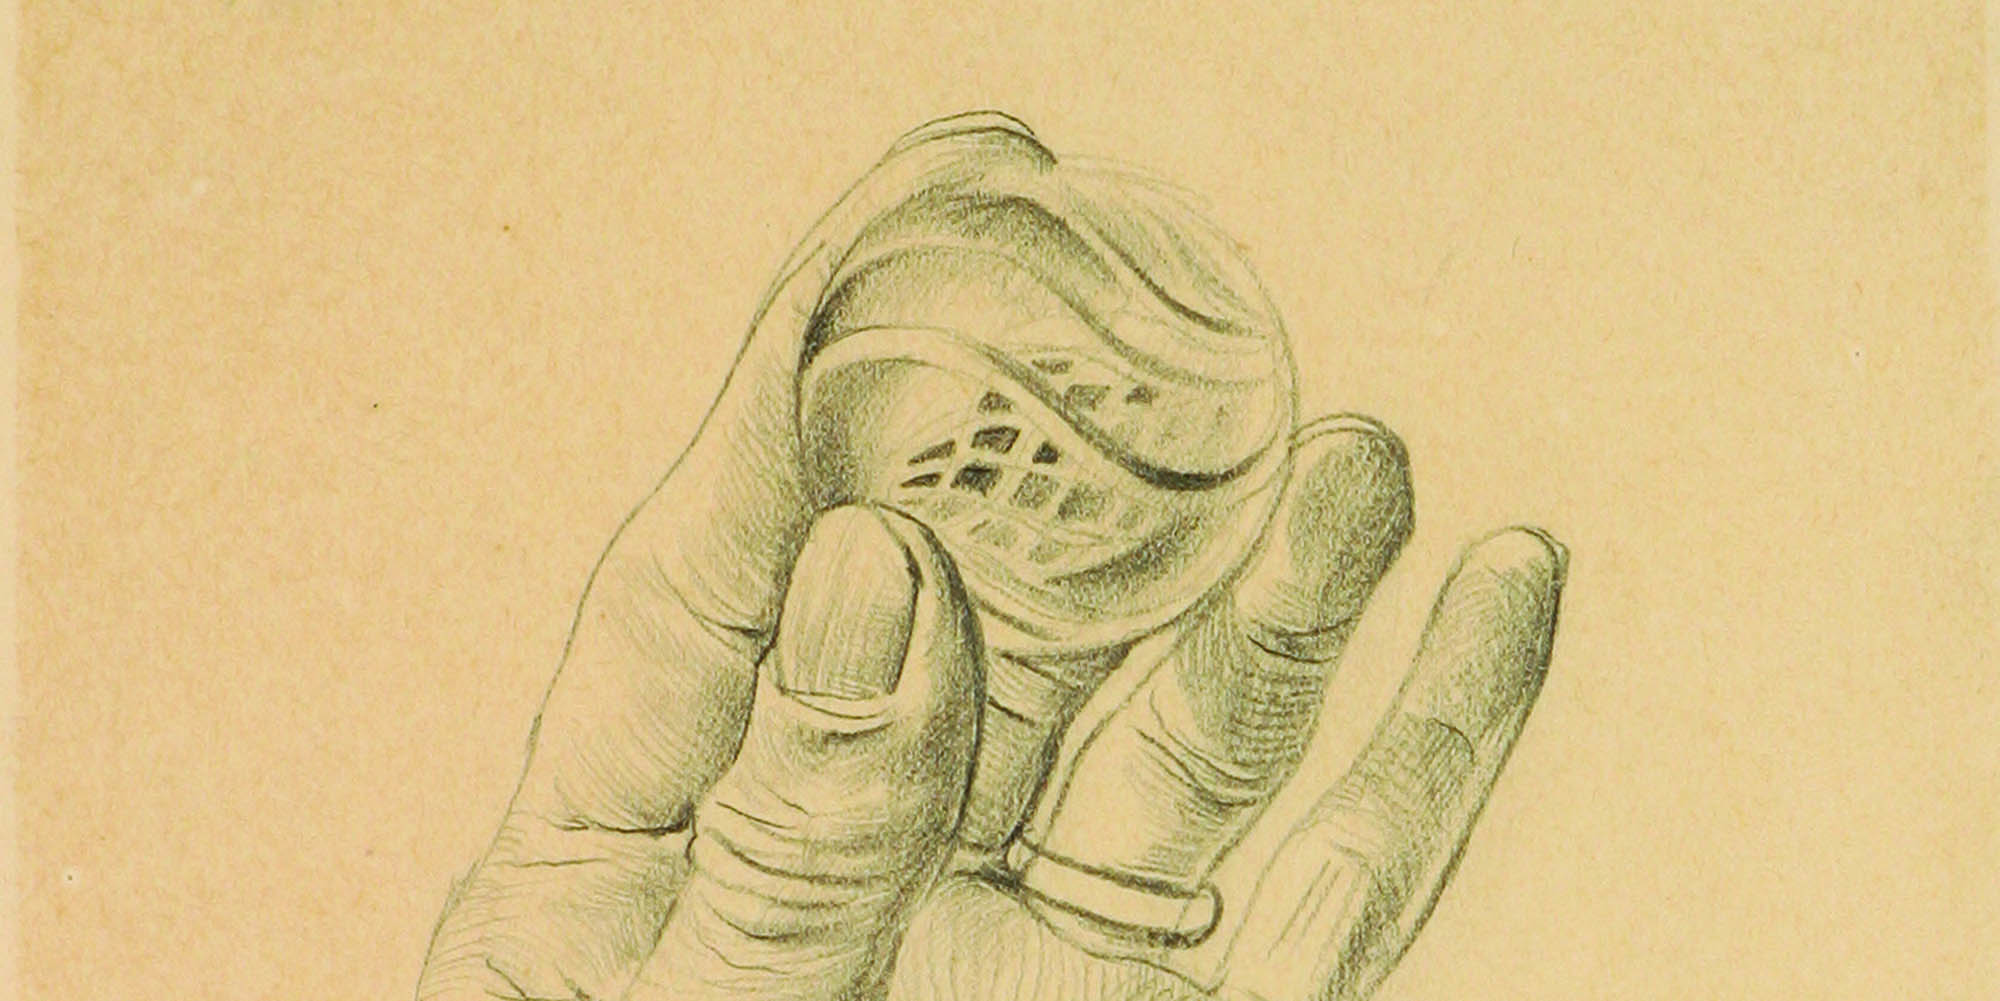 Hans Bellmer: Photographs & Drawings from the 1930s